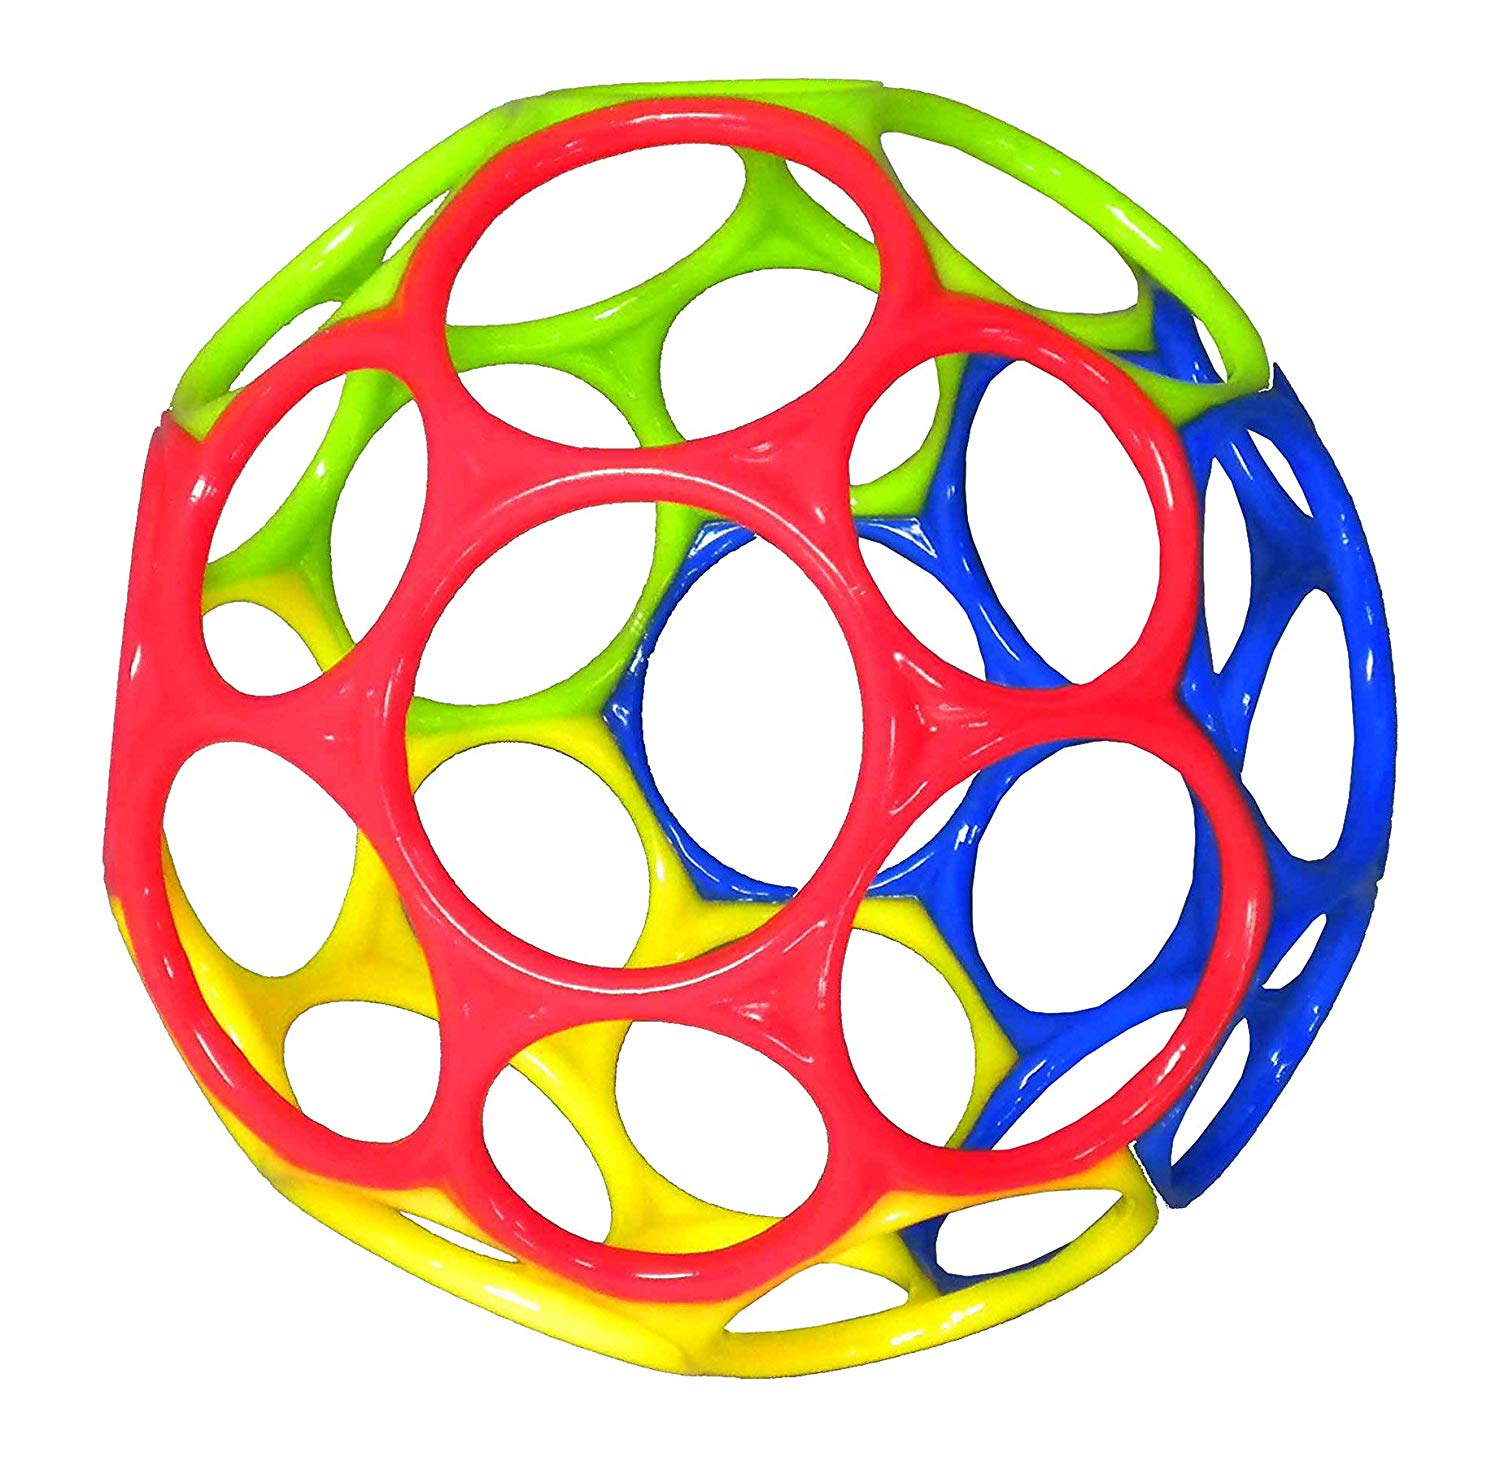 The OBall Toy is flexible and bendable.